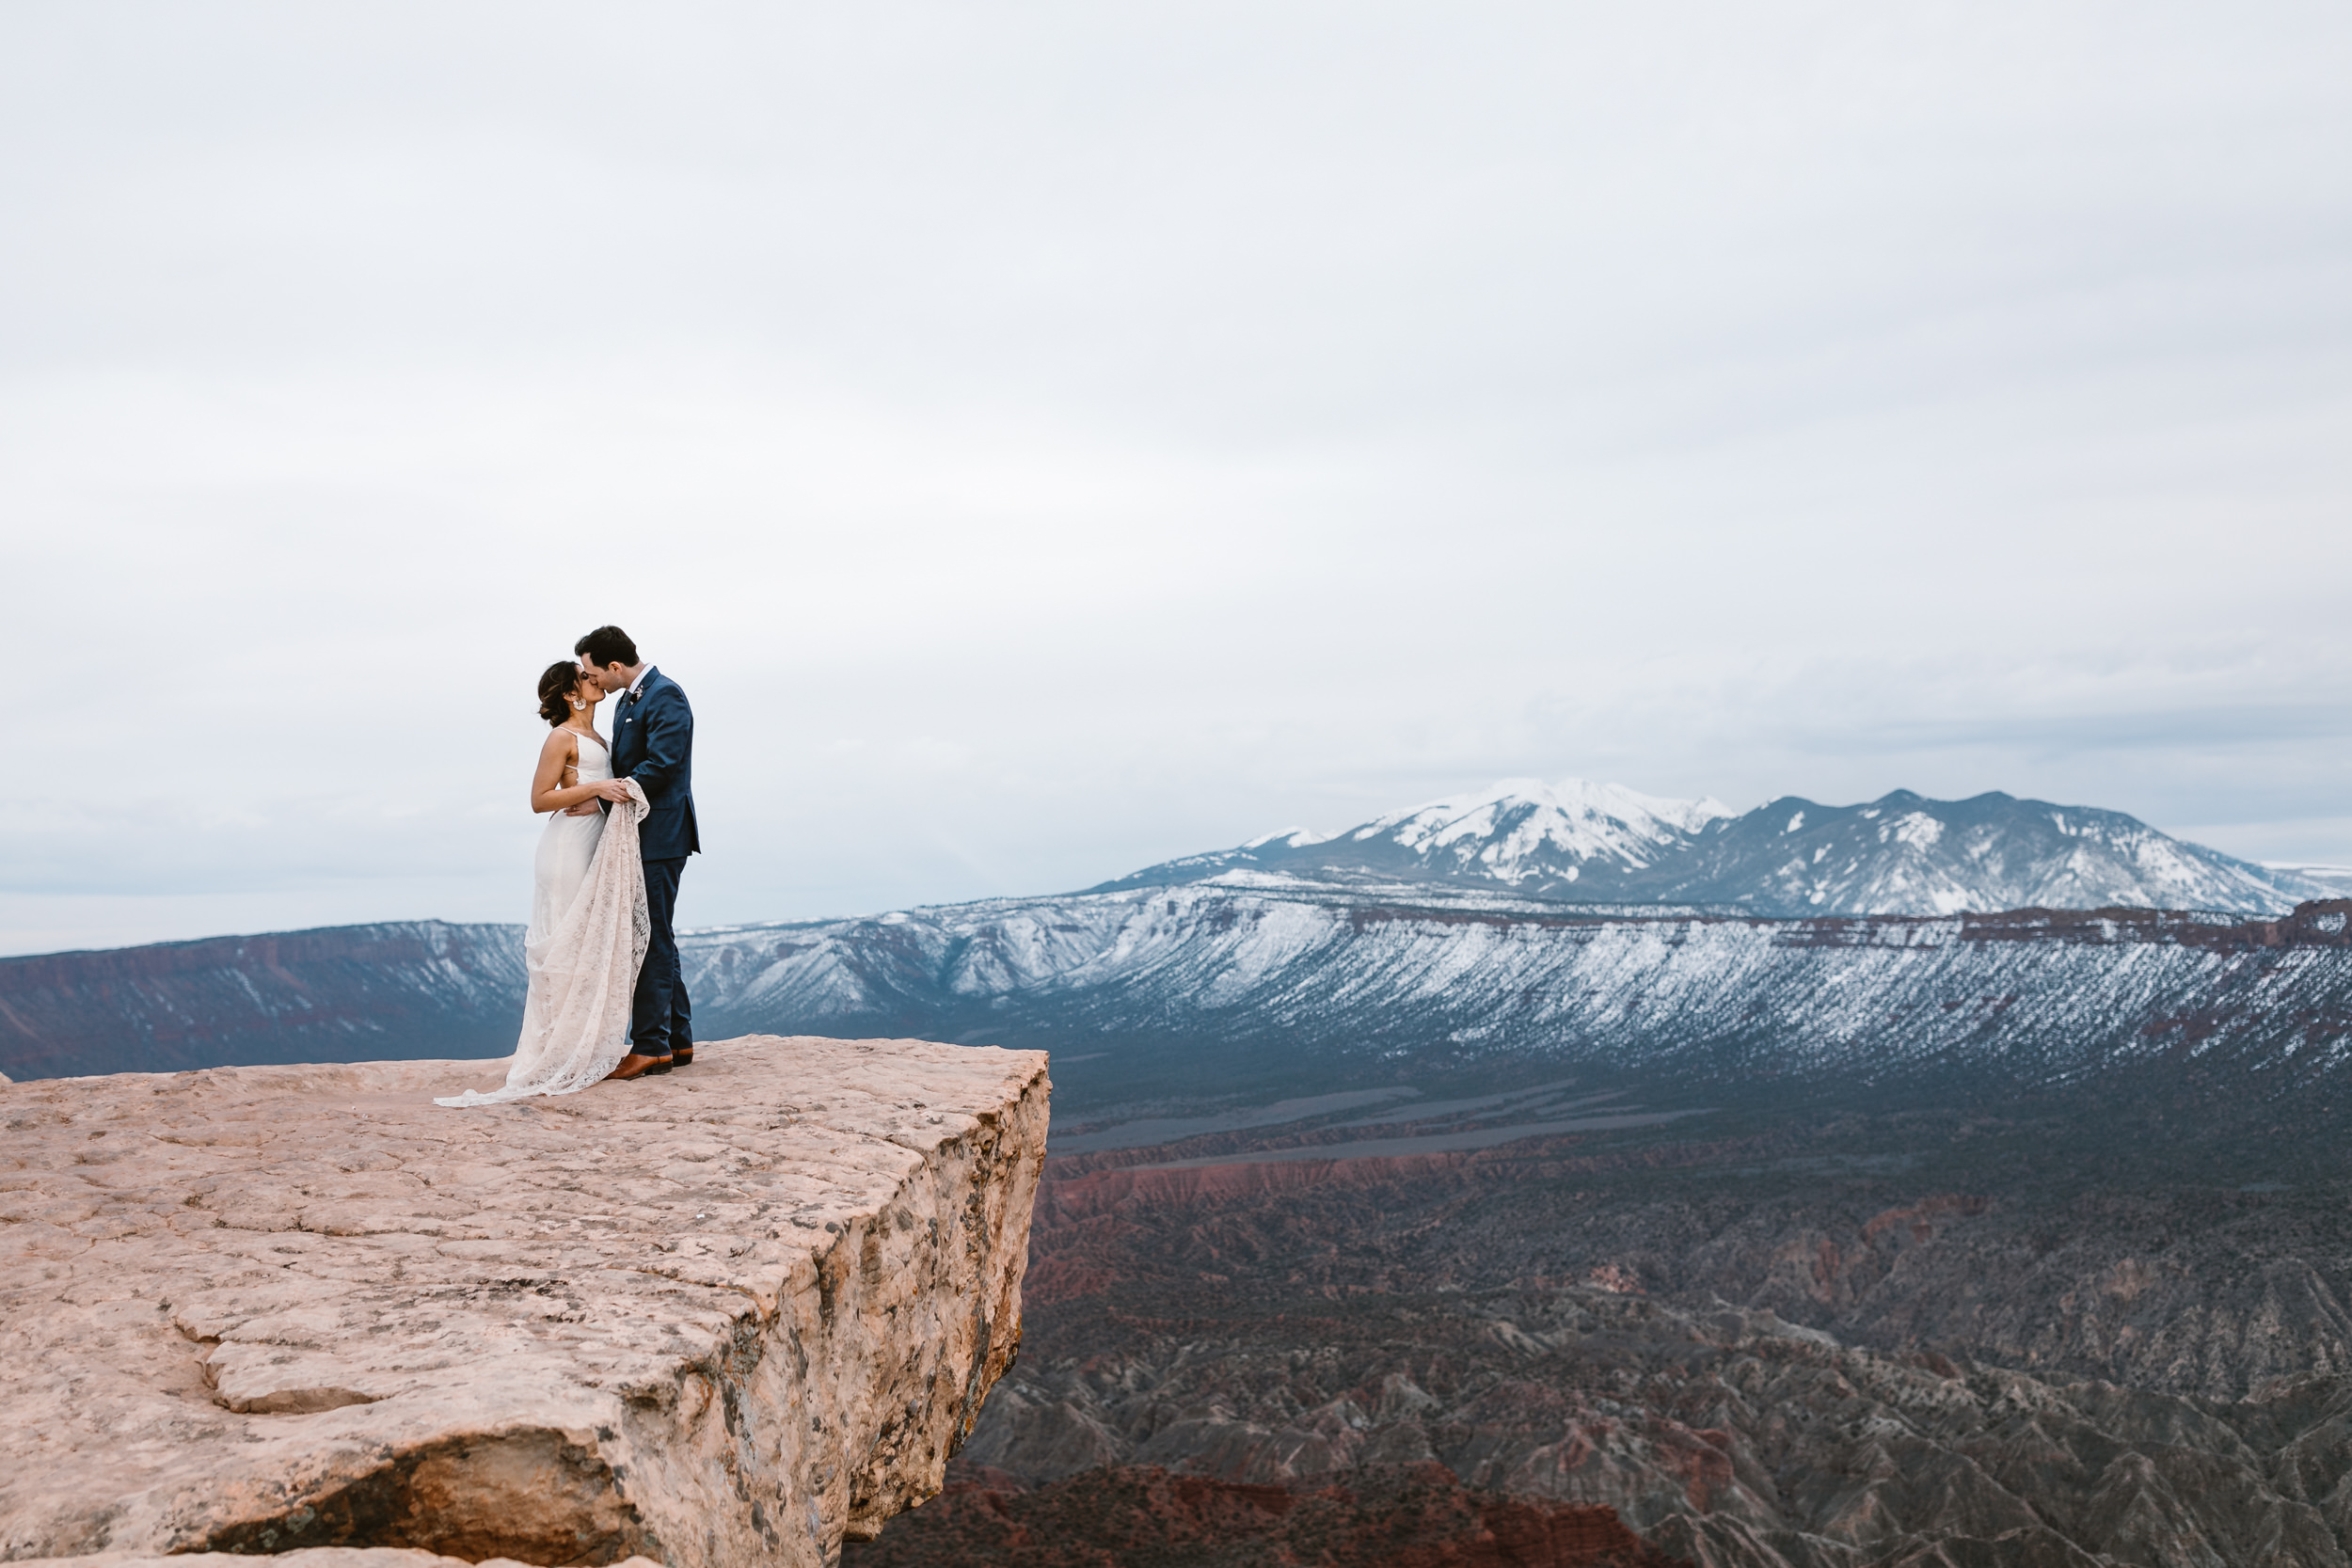 Hearnes-Elopement-Photography-Moab-Jeep-Wedding-40.jpg